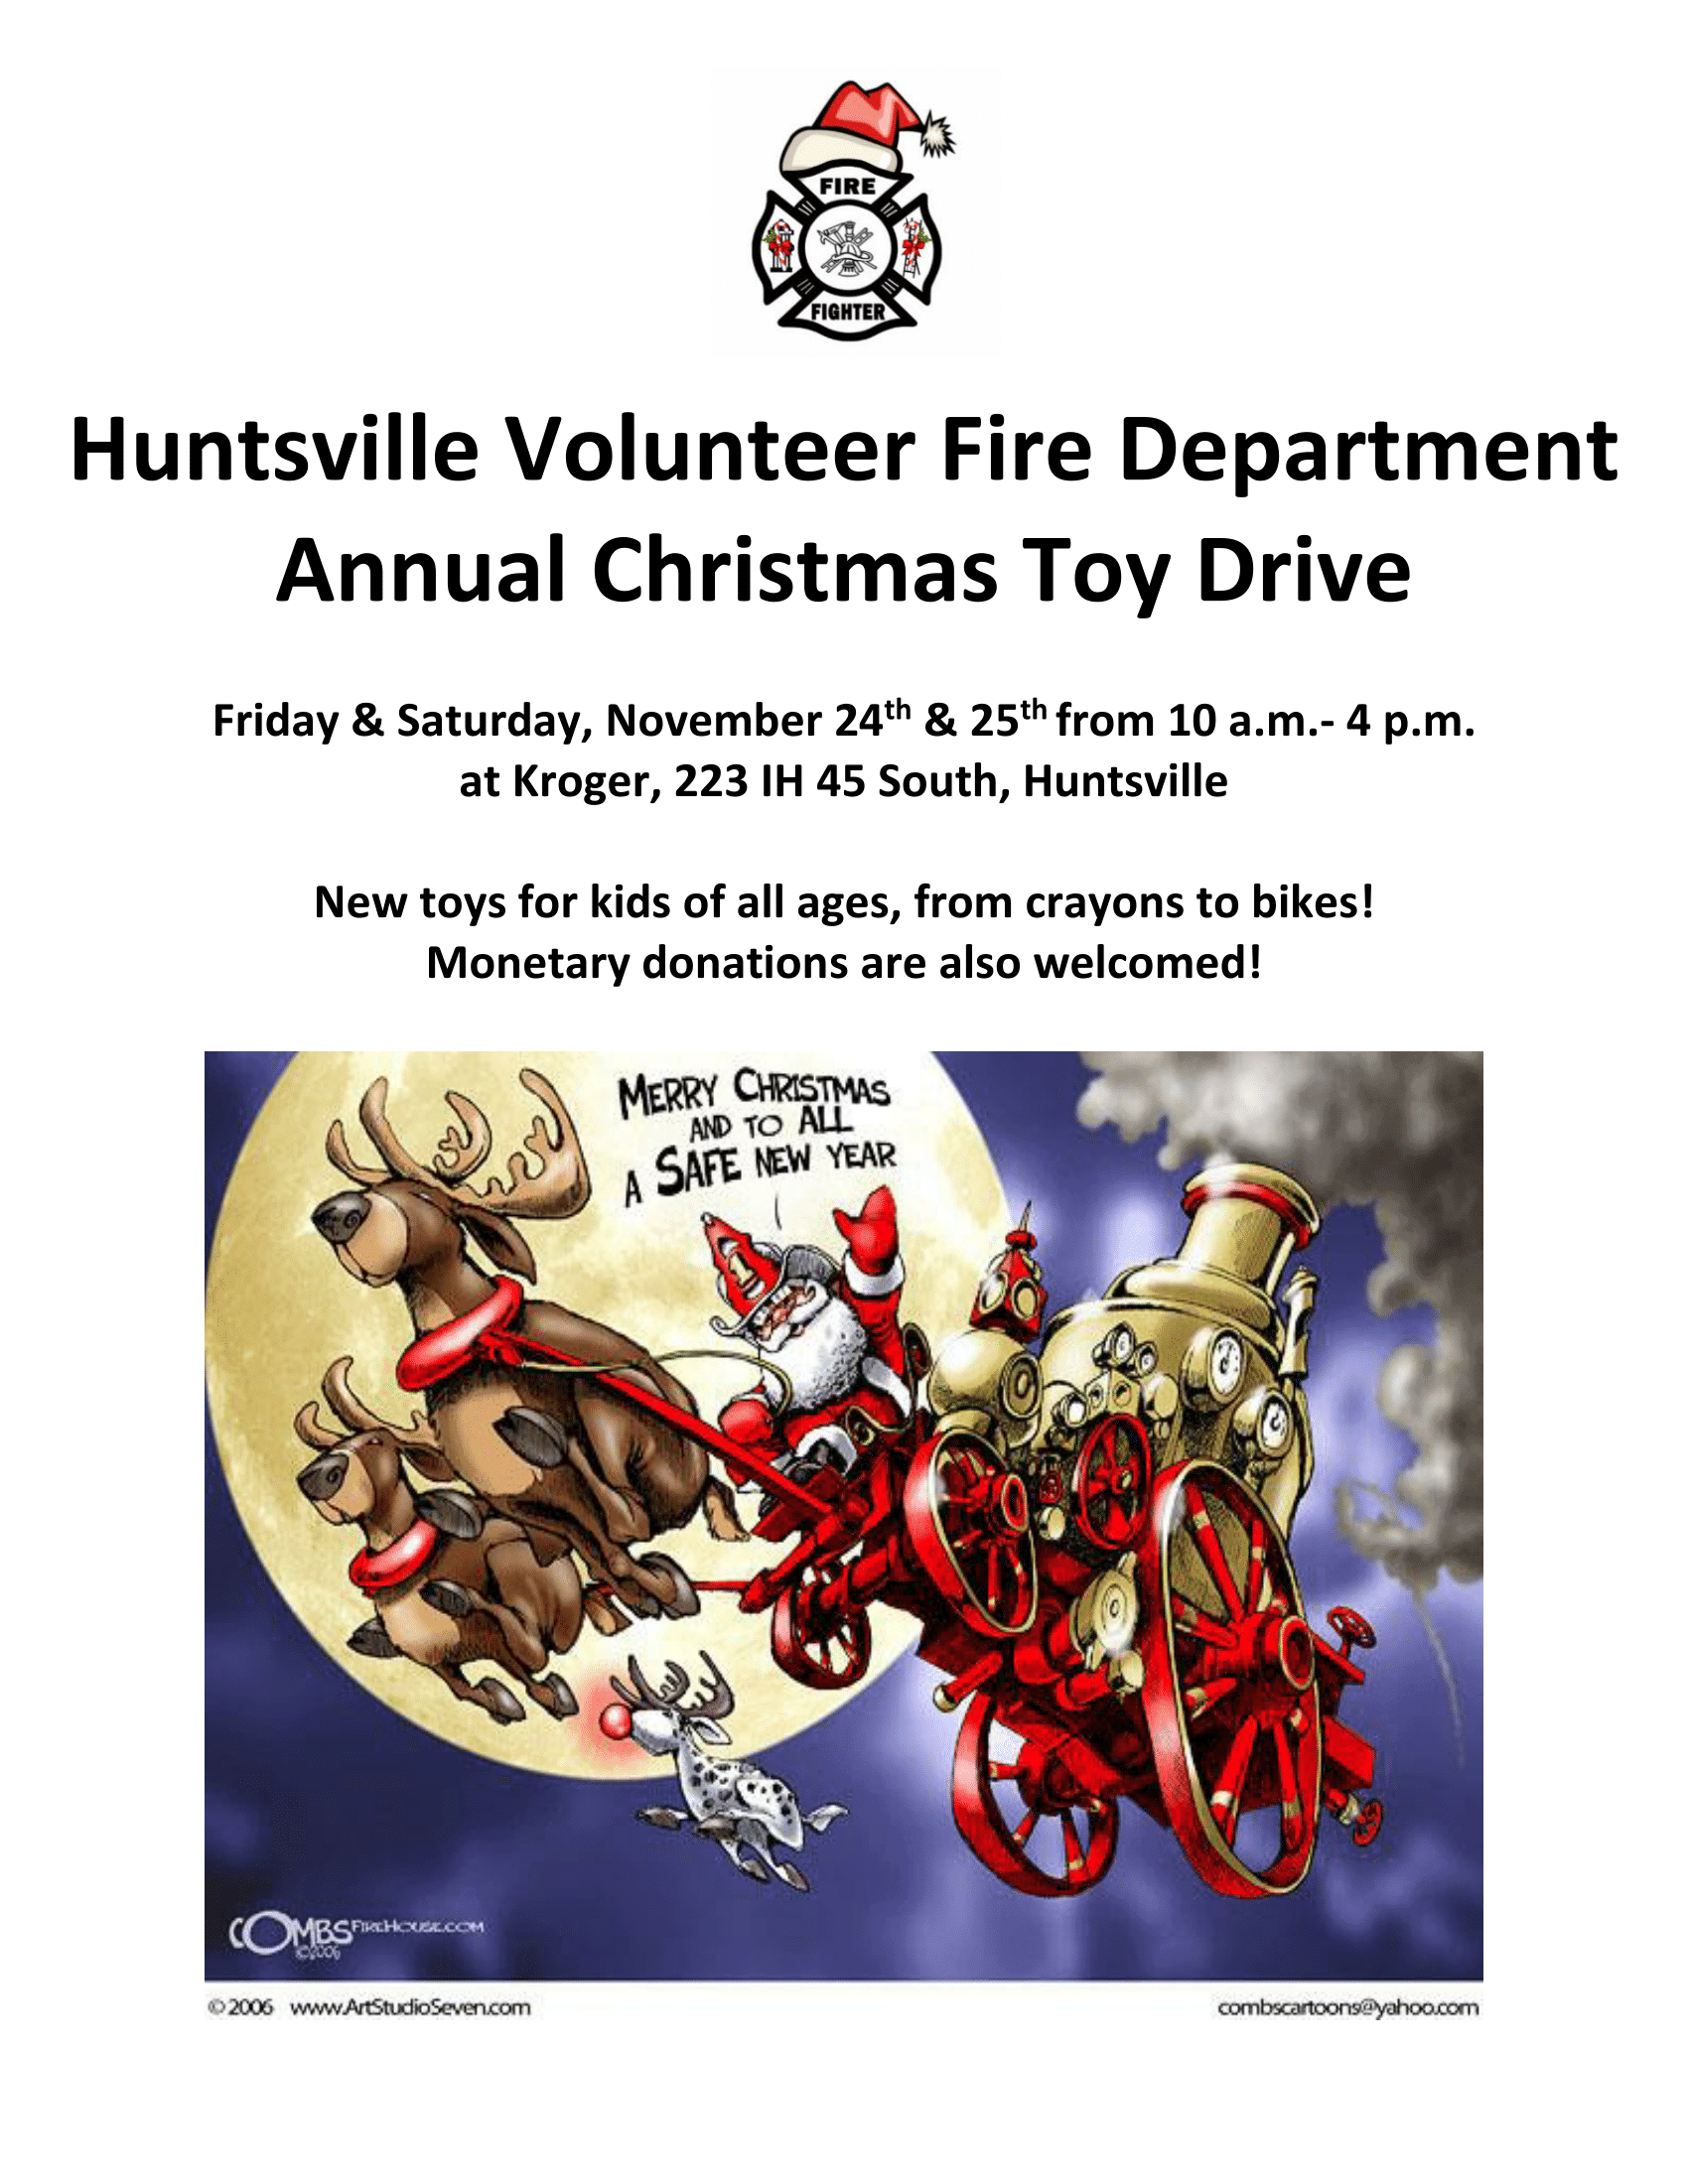 Help make someone's Christmas brighter! Bring new unwrapped toys for all ages to the annual Huntsville VFD Toy Drive, Nov. 24 & 25 at Kroger, from 10-4 each day.